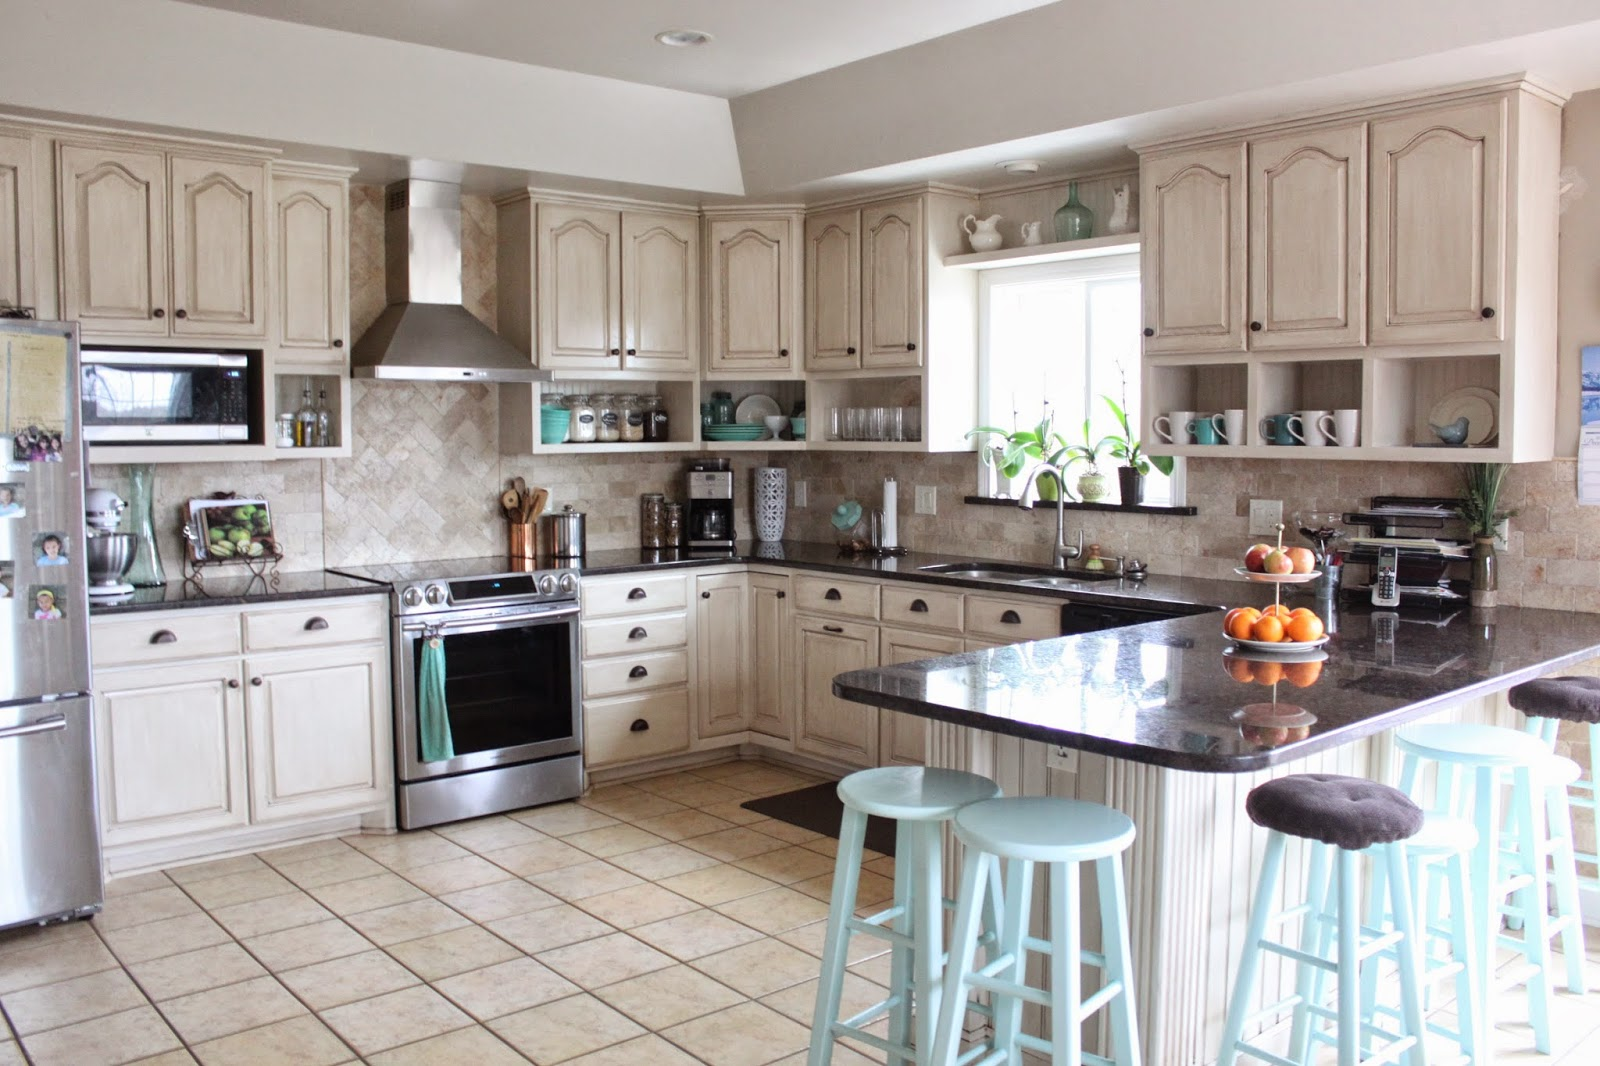 Namely Original Painted Kitchen And Remodel Reveal